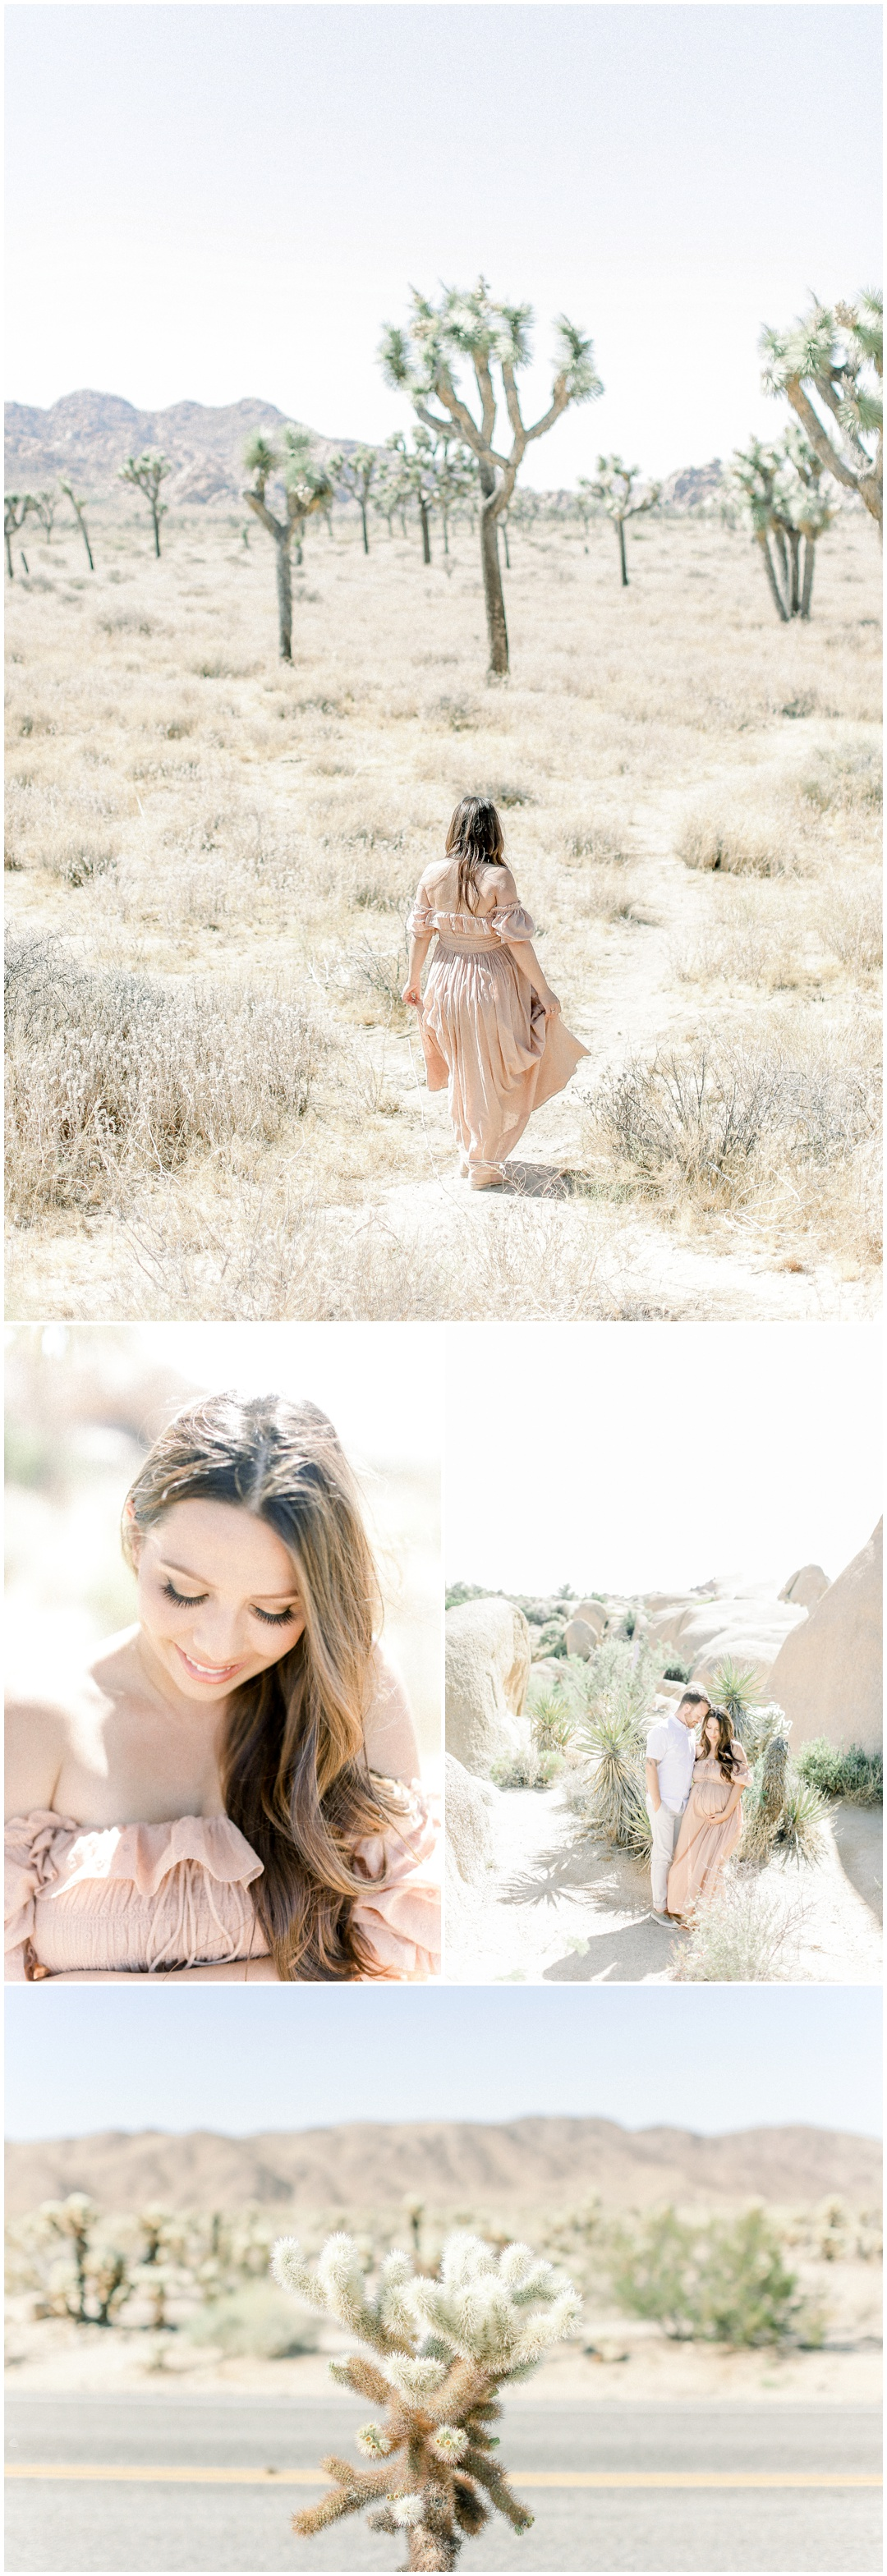 Newport_Beach_Joshua_Tree_Maternity_Photos_Session_Leliani_Hailey_Shane_Hailey_Maternity_Session__4275.jpg